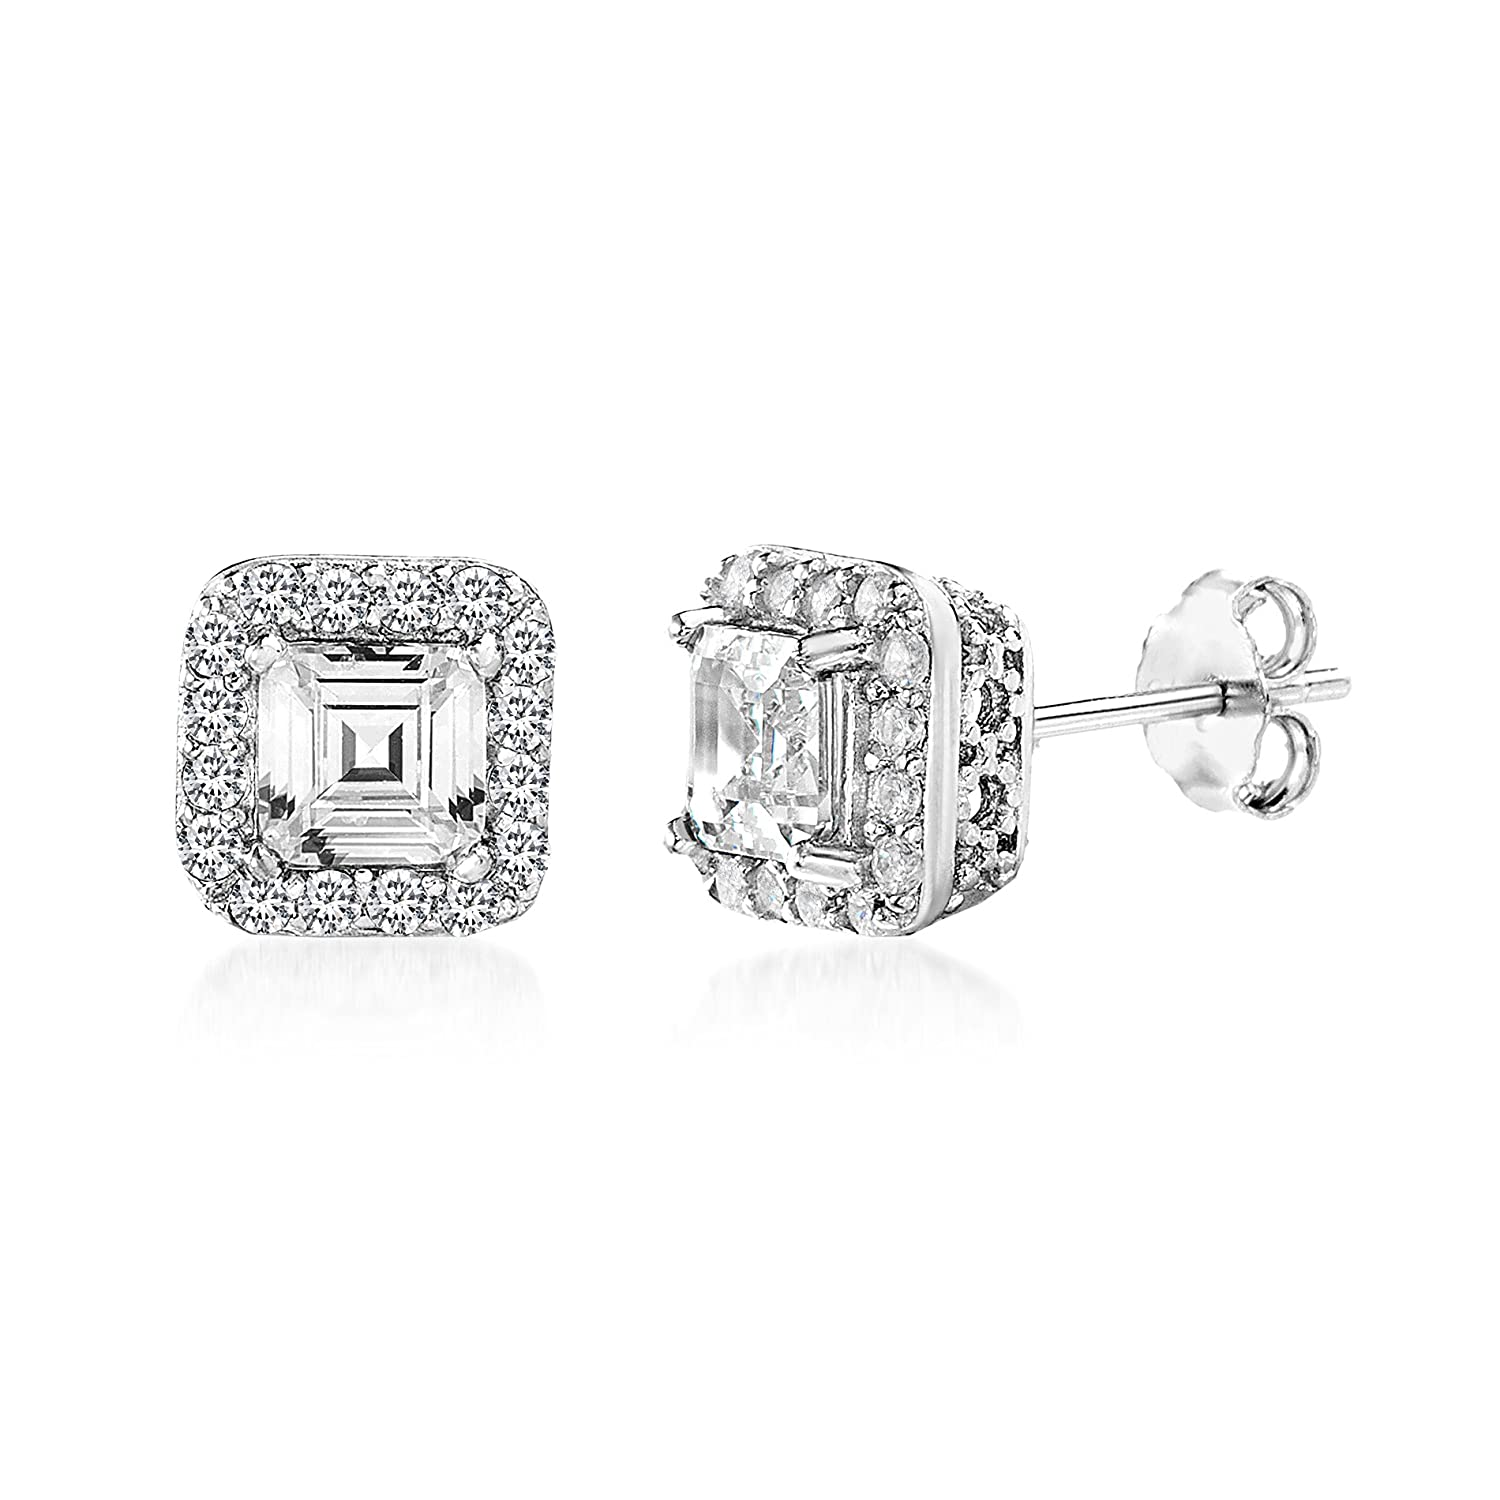 c23ef1252 Amazon.com: MIA SARINE 1-1/2 Cttw Square Emerald Shaped Cubic Zirconia Stud  Bridal Gift Earrings for Women in Rhodium Plated 925 Sterling Silver:  Jewelry